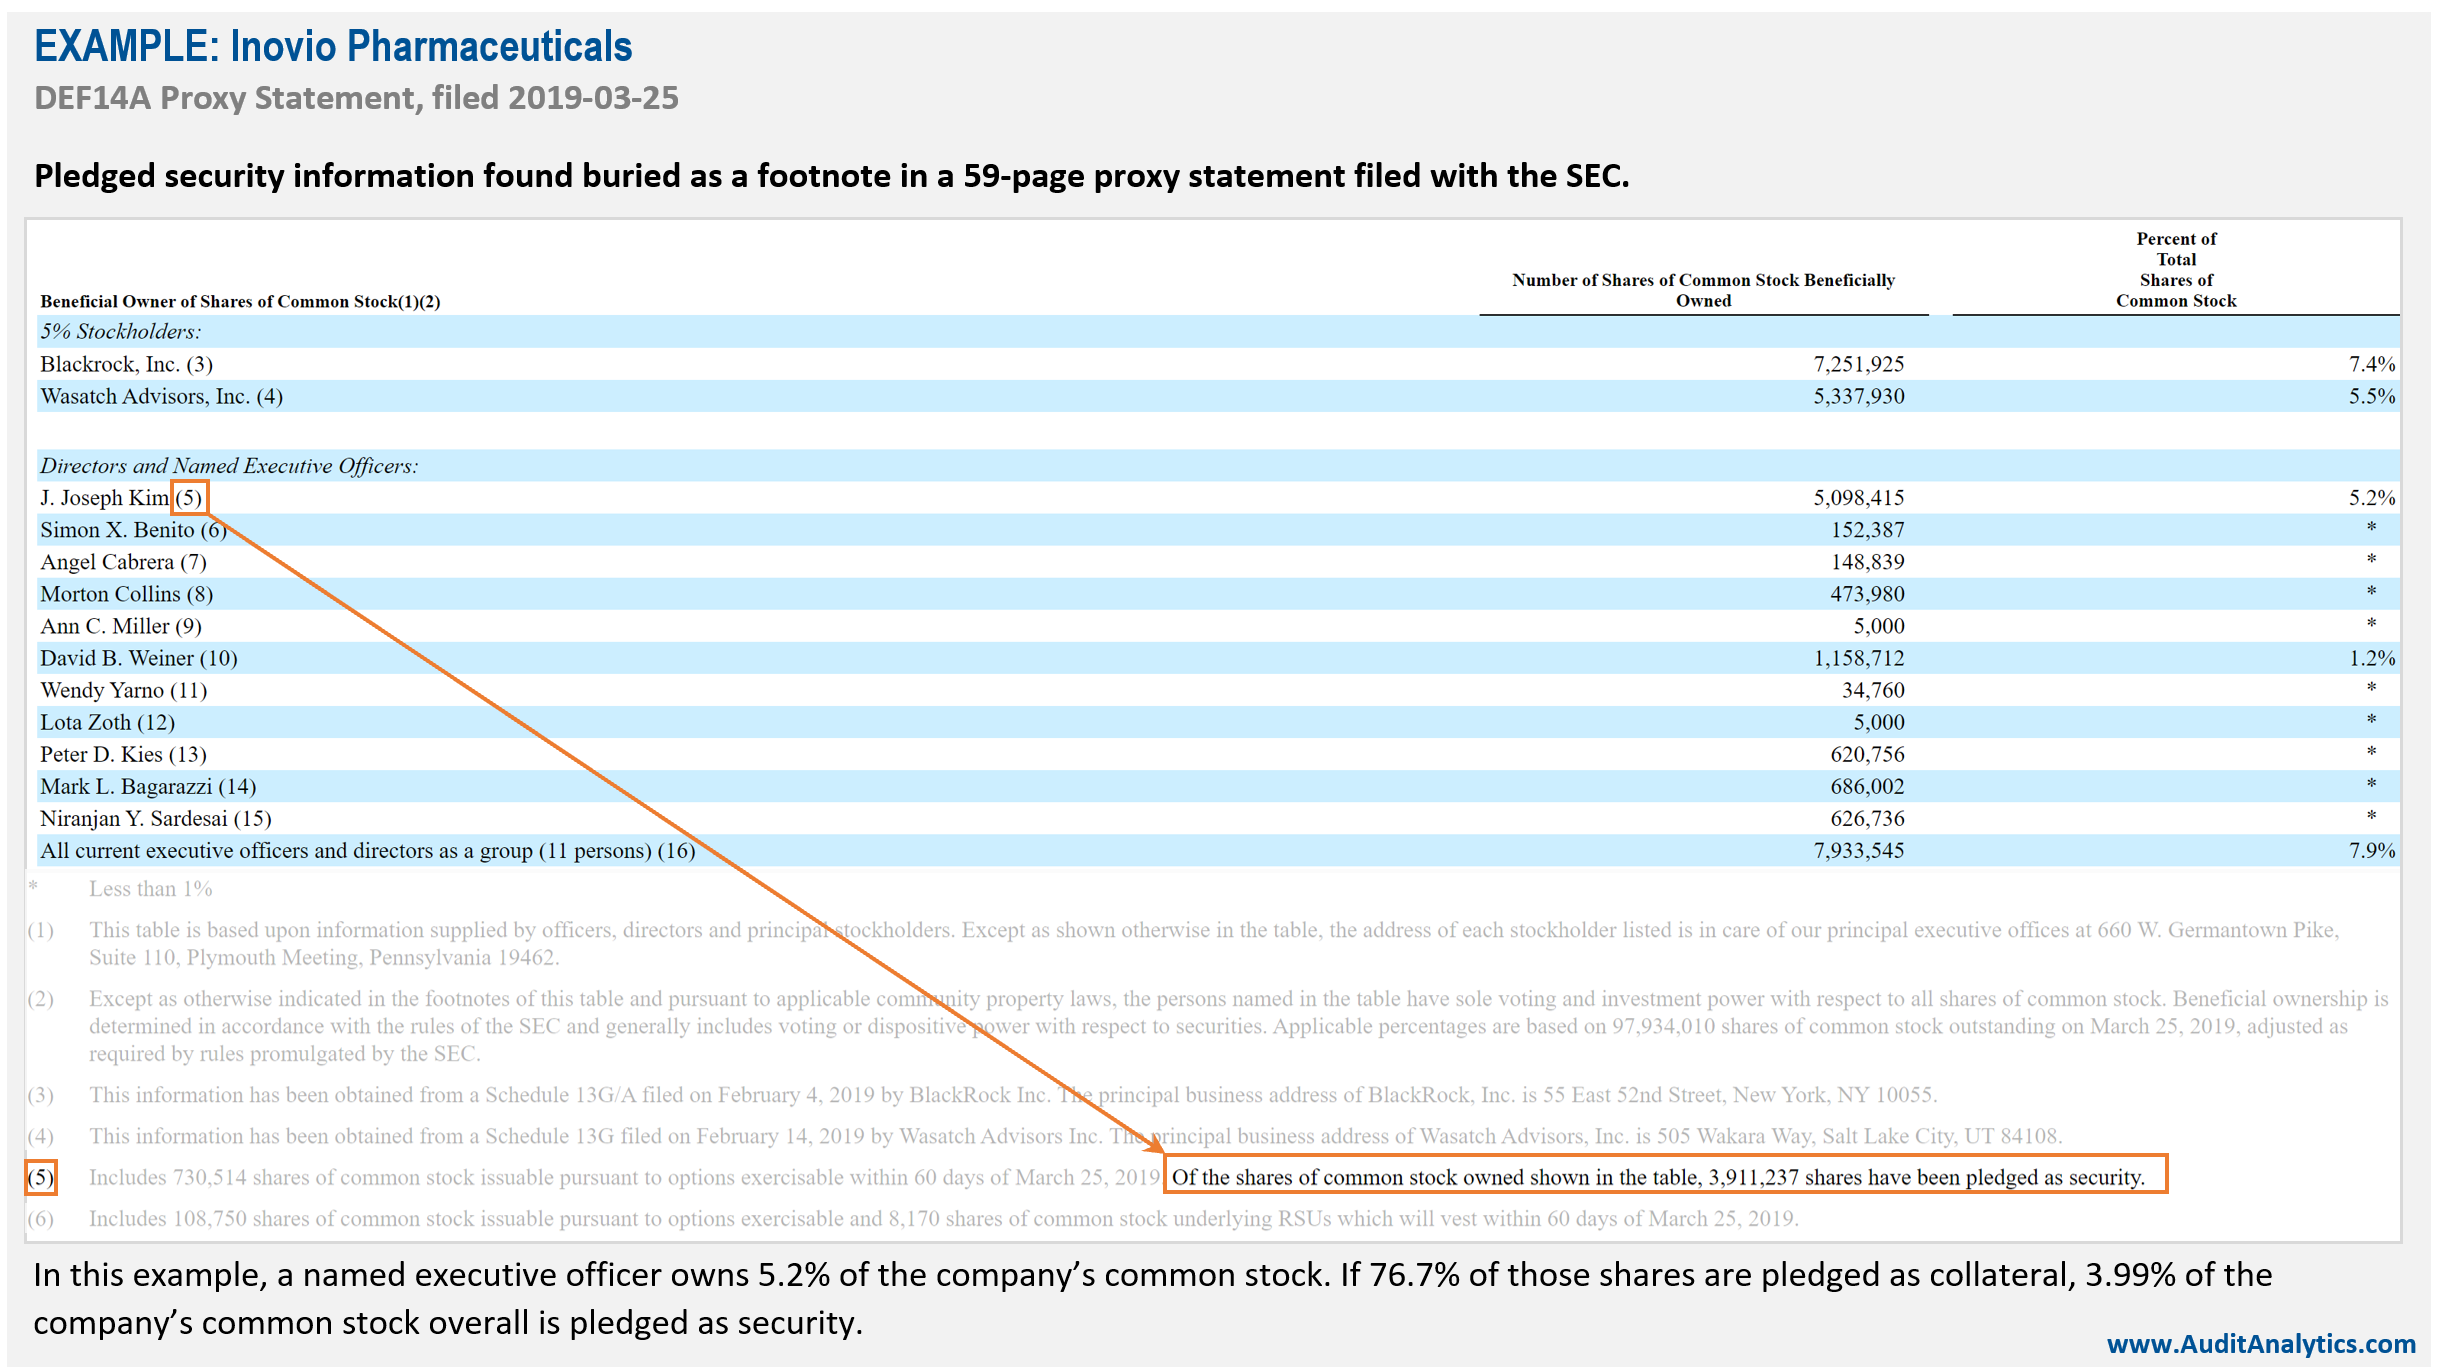 Pledged shares disclosed as footnote in proxy statement.